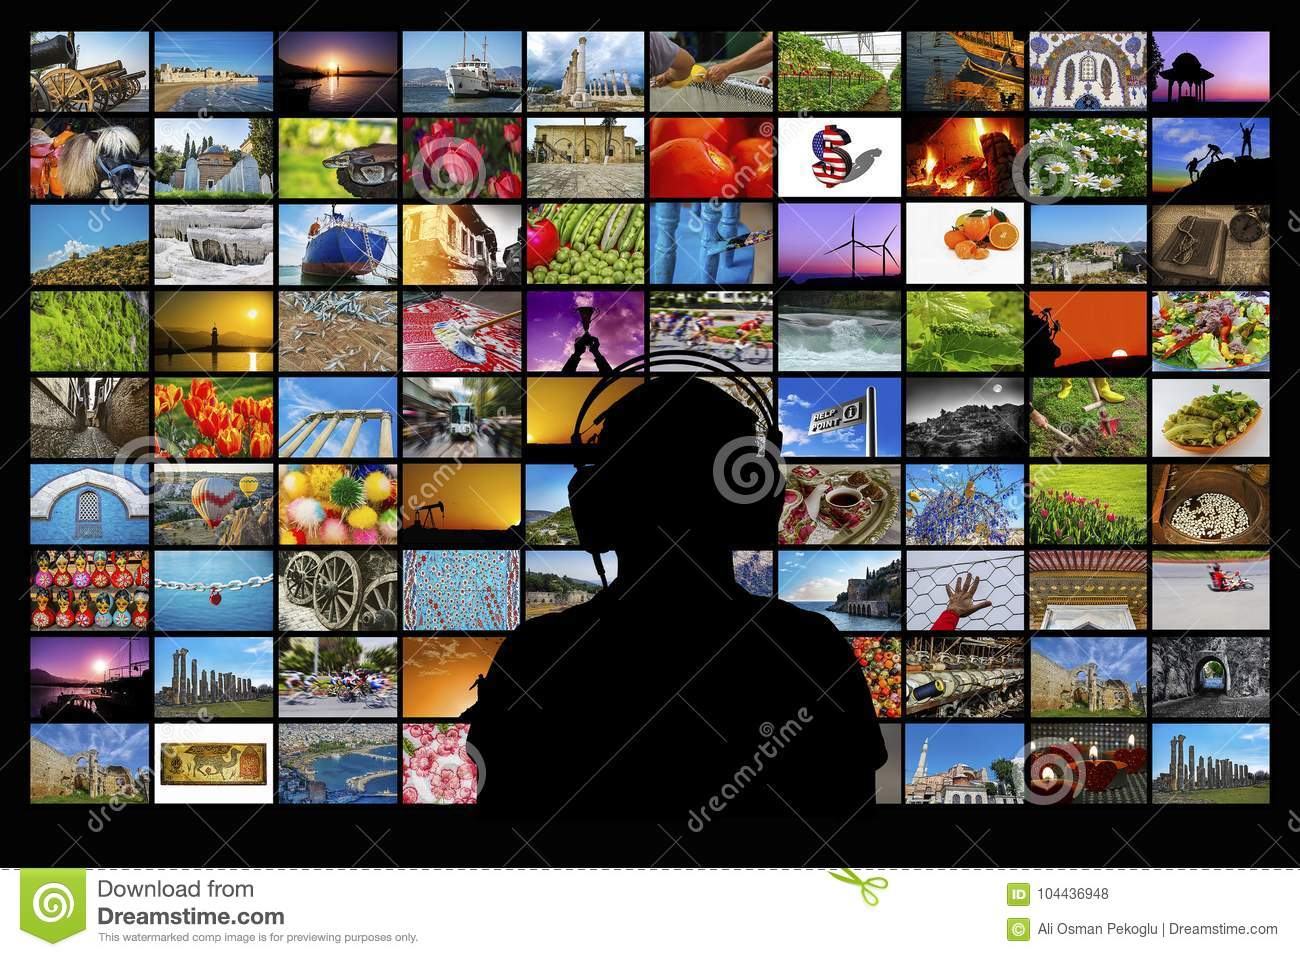 Silhouette Of Man Sitting In Front Of Video Wall Watching Multimedia